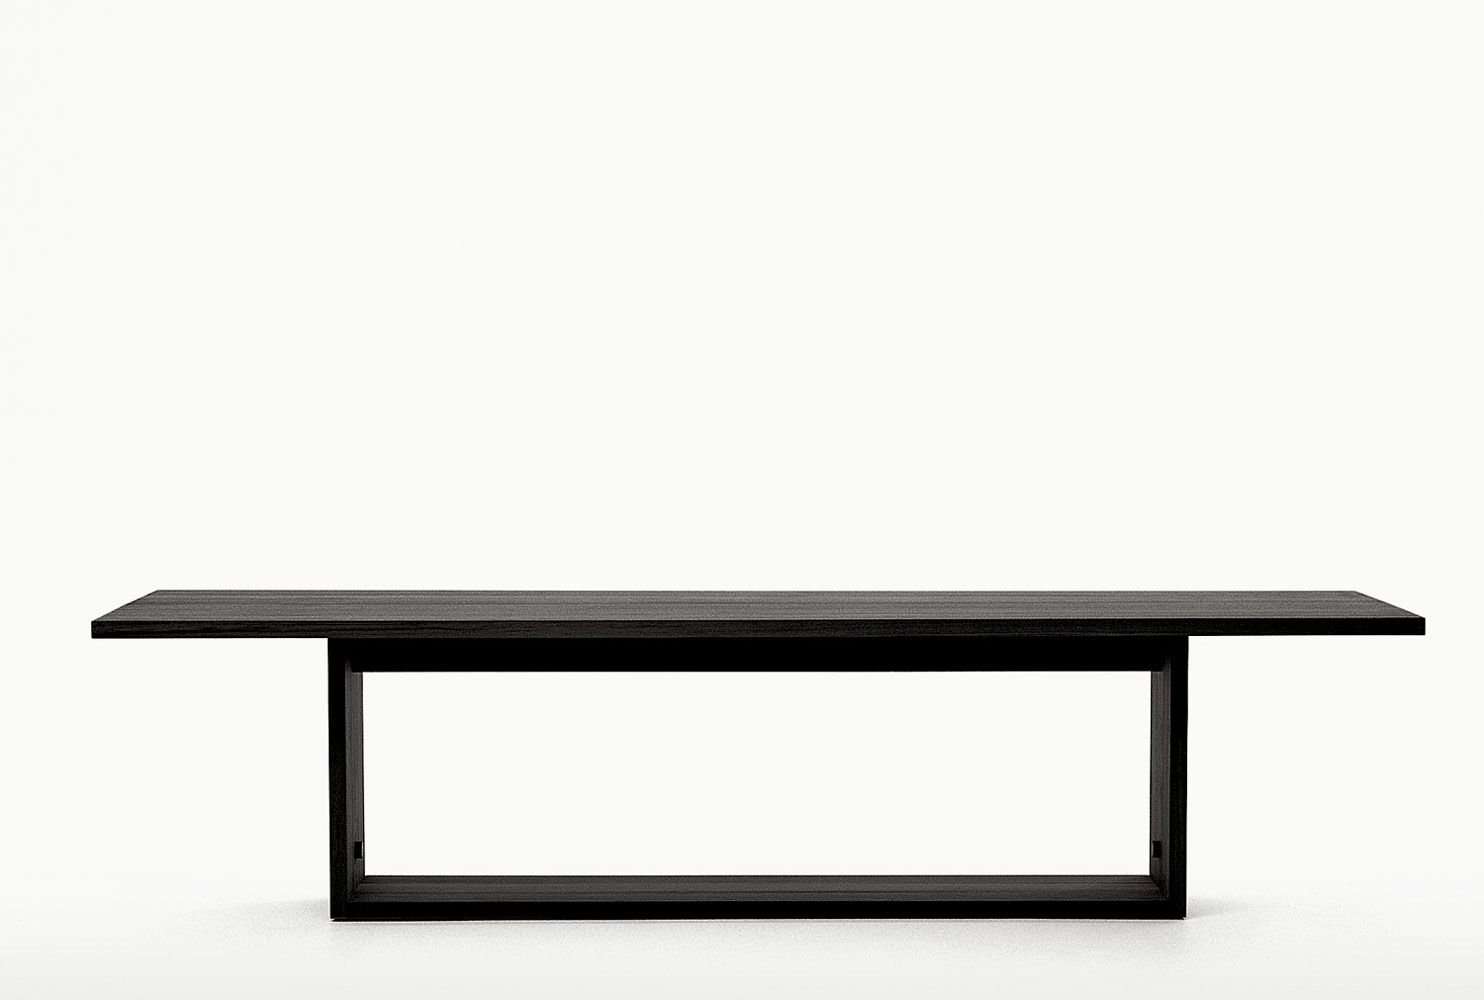 Argo Table Consolle Cm 300 By Maxalto Design By Antonio Citterio Shop Online On Ciatdesign In 2020 Dining Room Console Table Furniture Dining Table